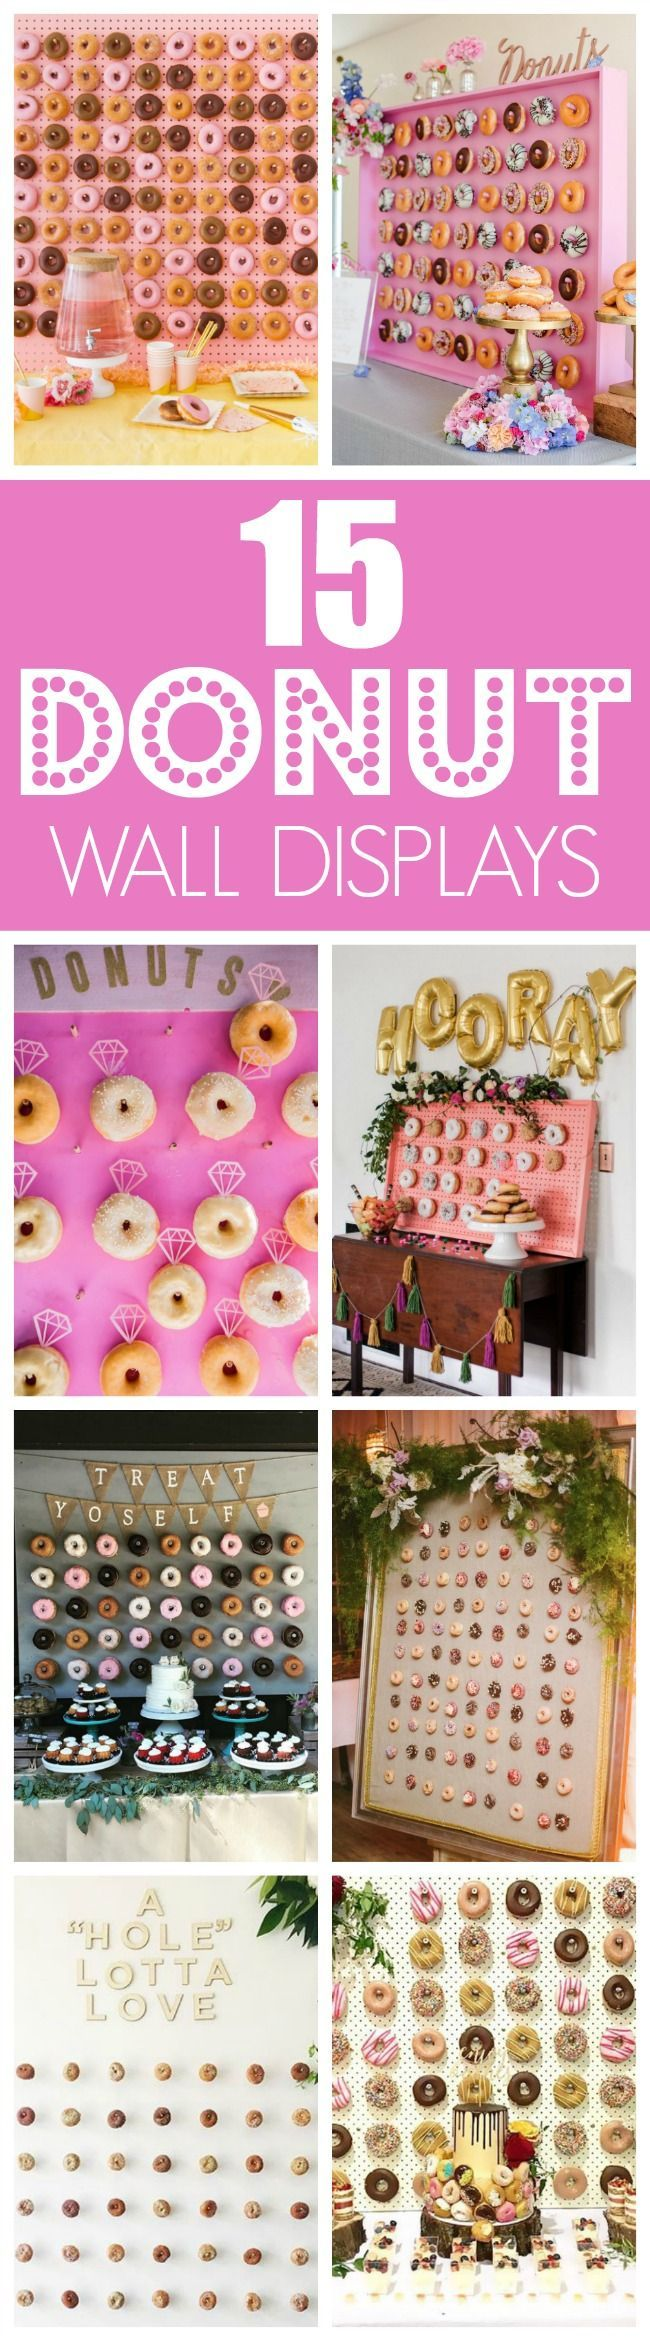 15 Unforgettable Donut Wall Display Ideas for your next event on prettymyparty.com.